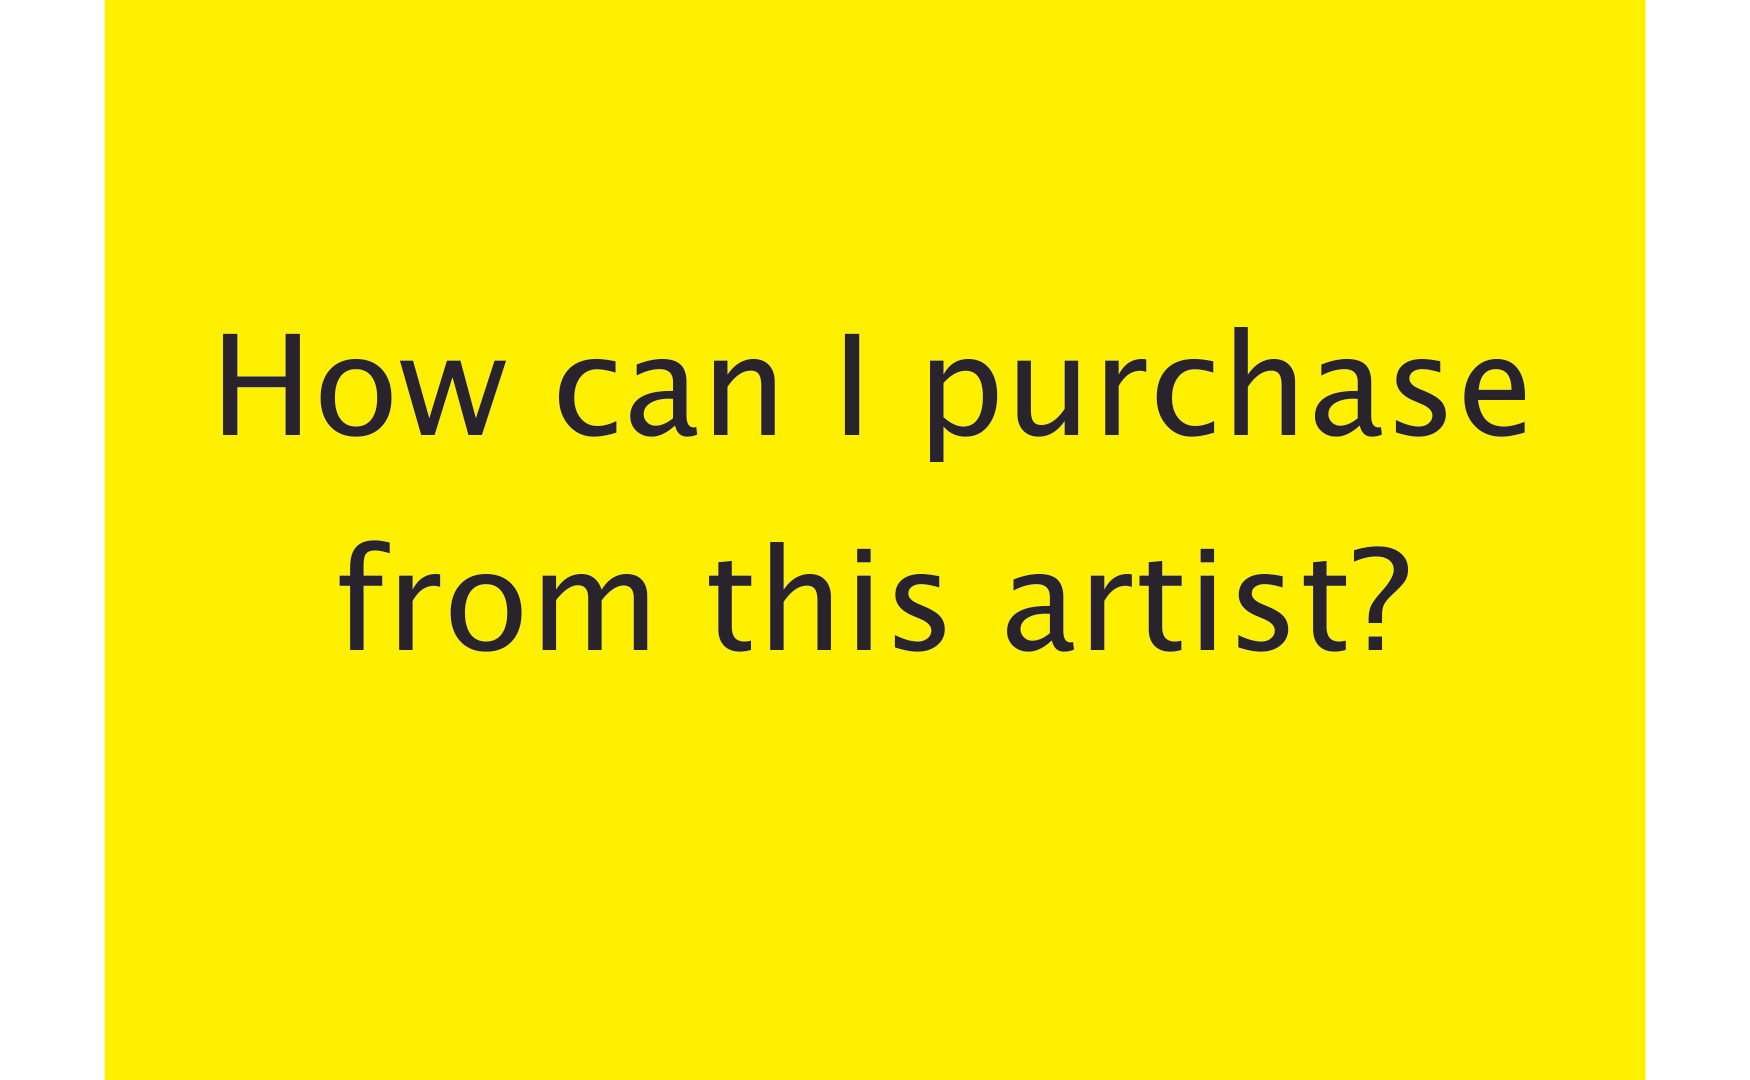 To enquire about or purchase a featured artwork